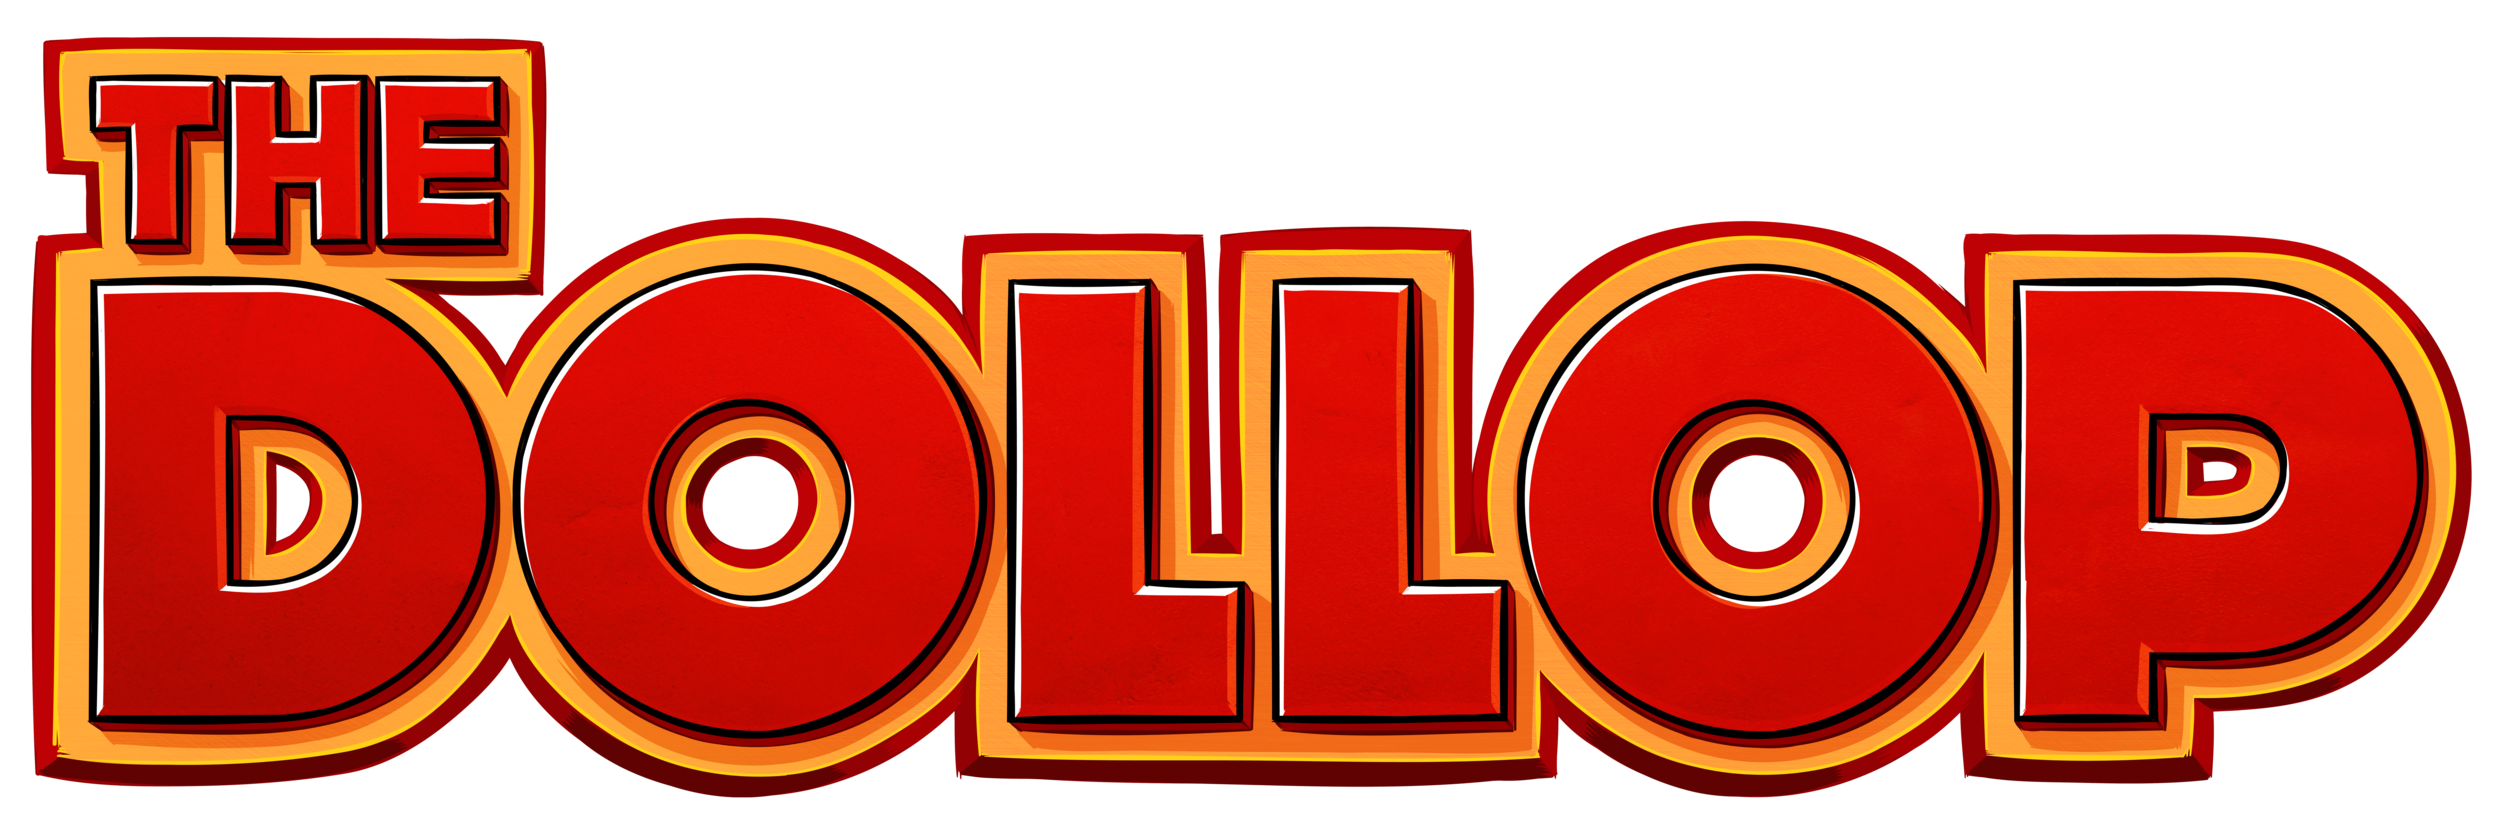 The Dollop 2018 logo nameless.png